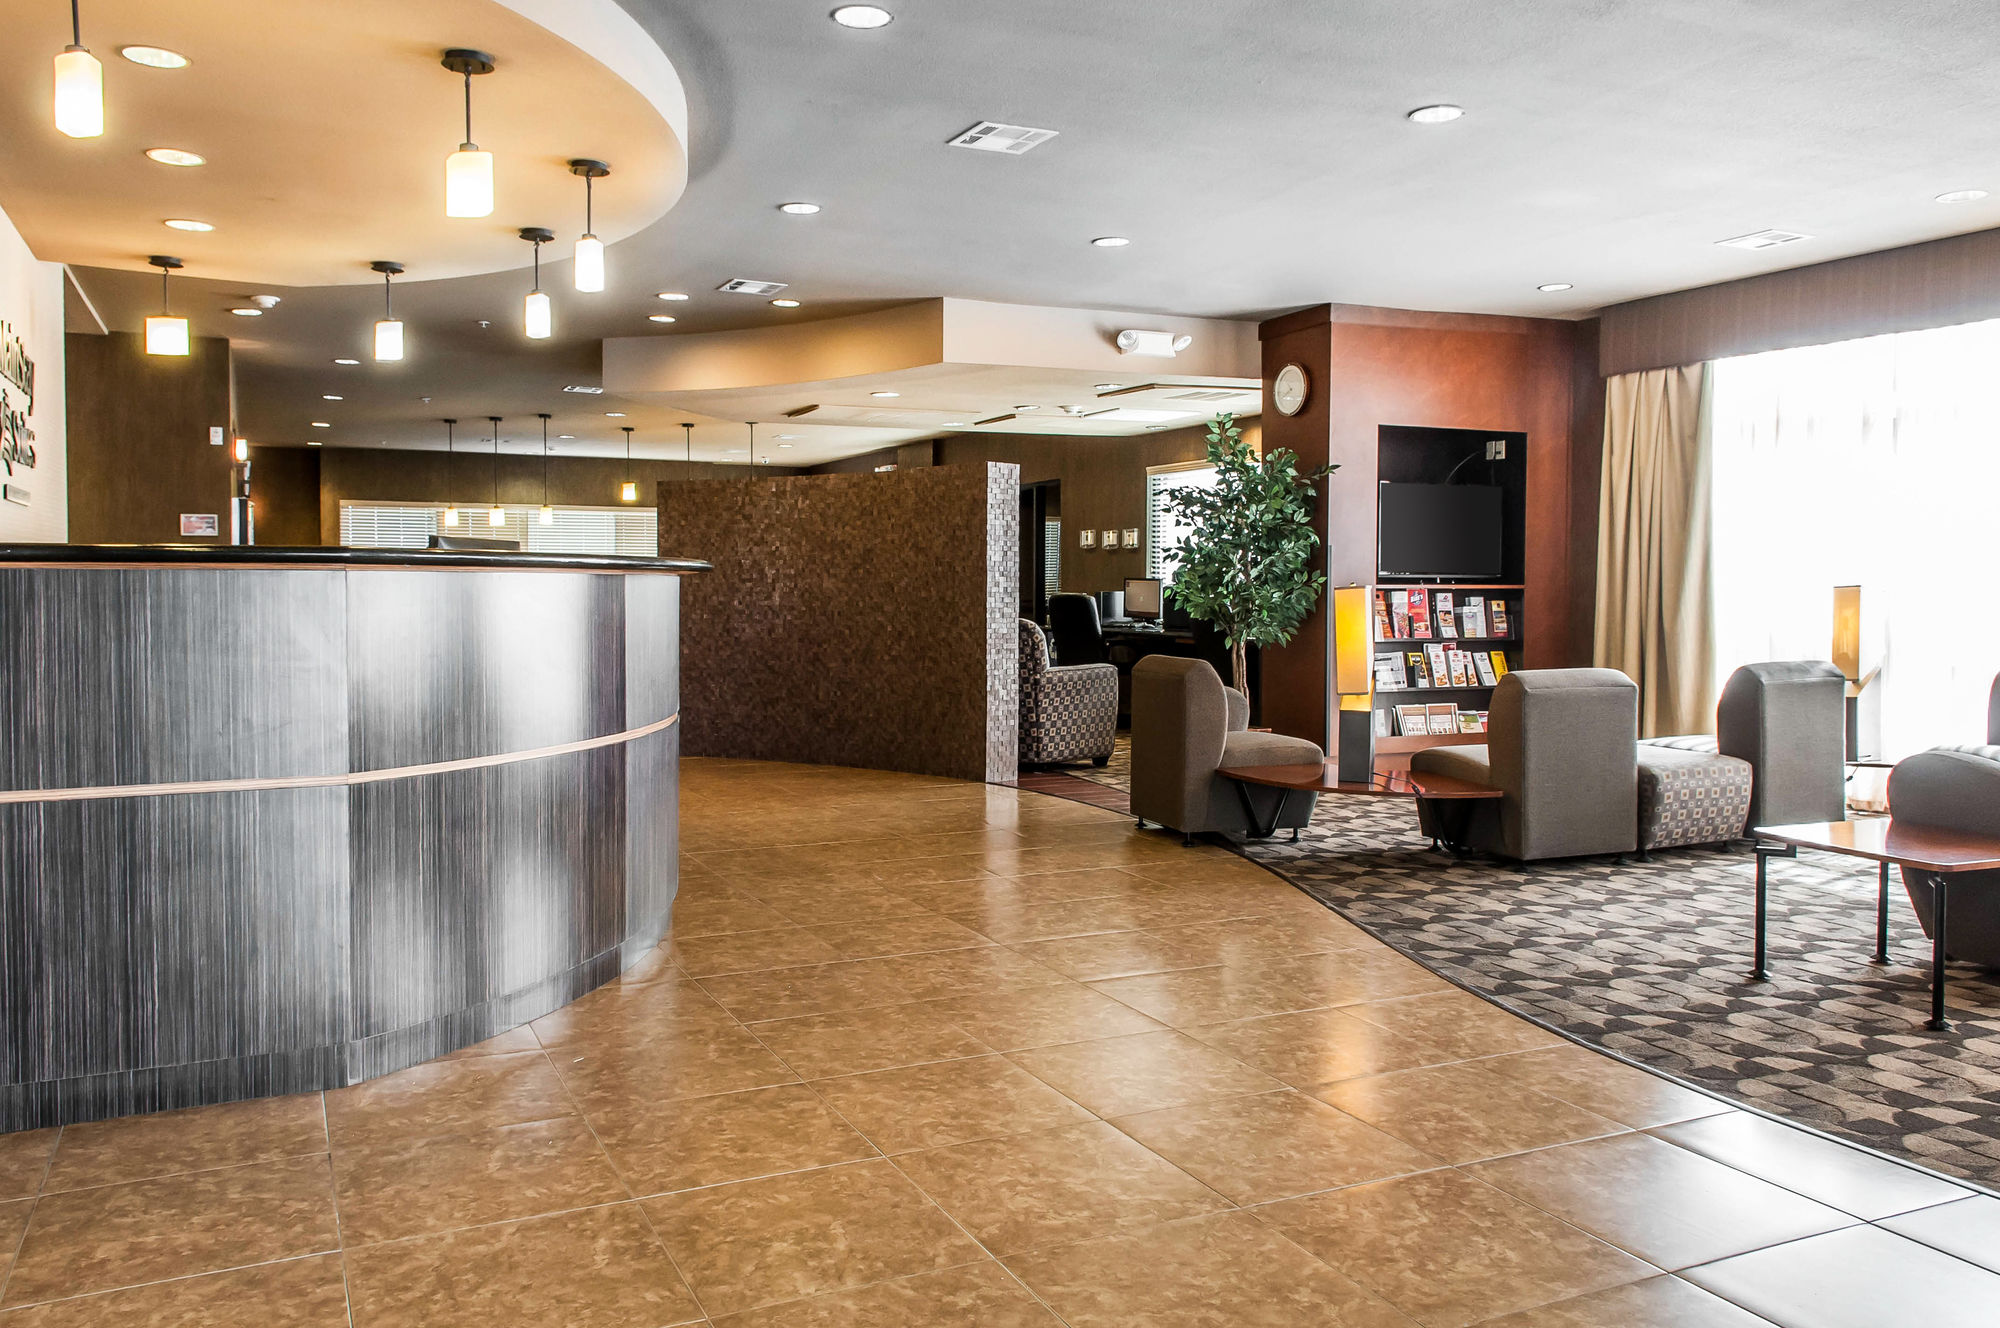 Hobbs Hotel Coupons for Hobbs, New Mexico - FreeHotelCoupons.com